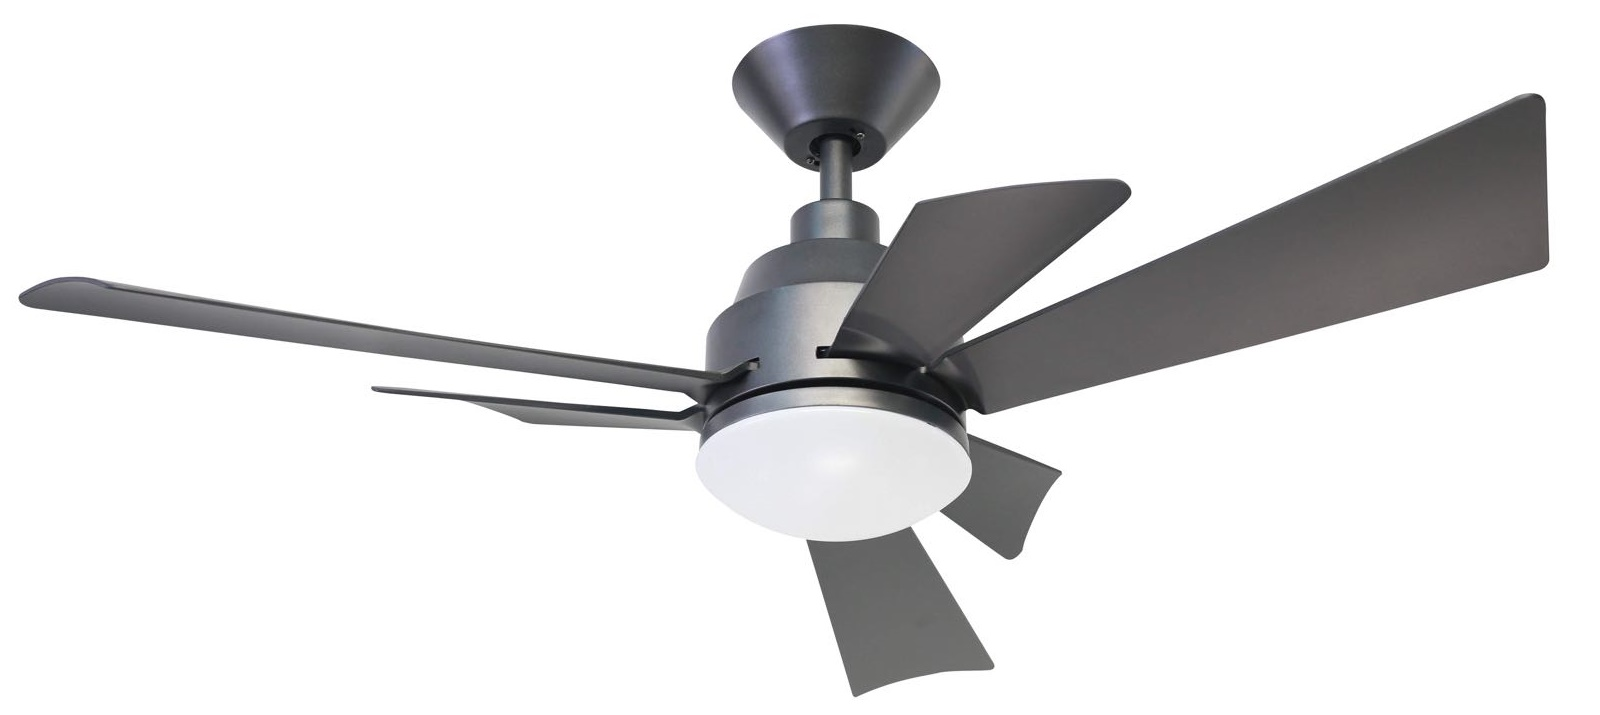 Kaze Fujin Ceiling Fan Dc Motor Ceiling Fan Best Offer